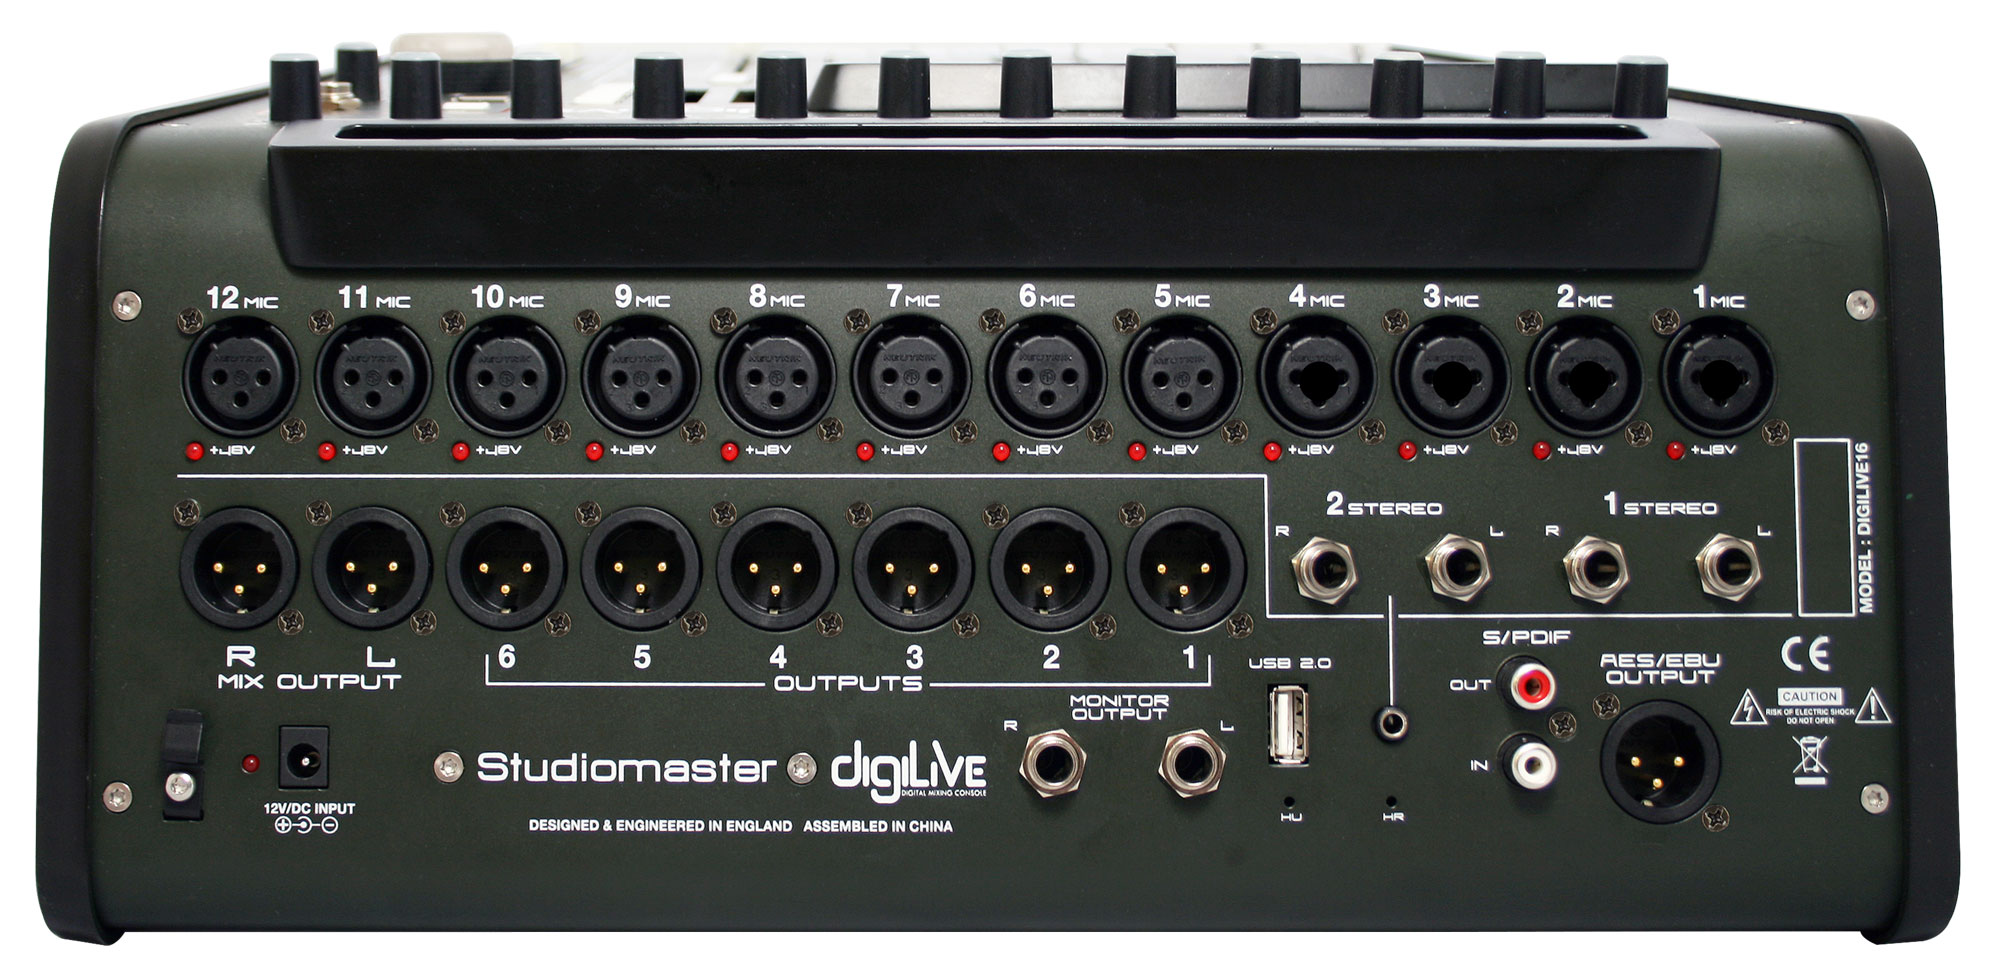 digilive rear panel 1613 Studiomaster DigiLIVE 16